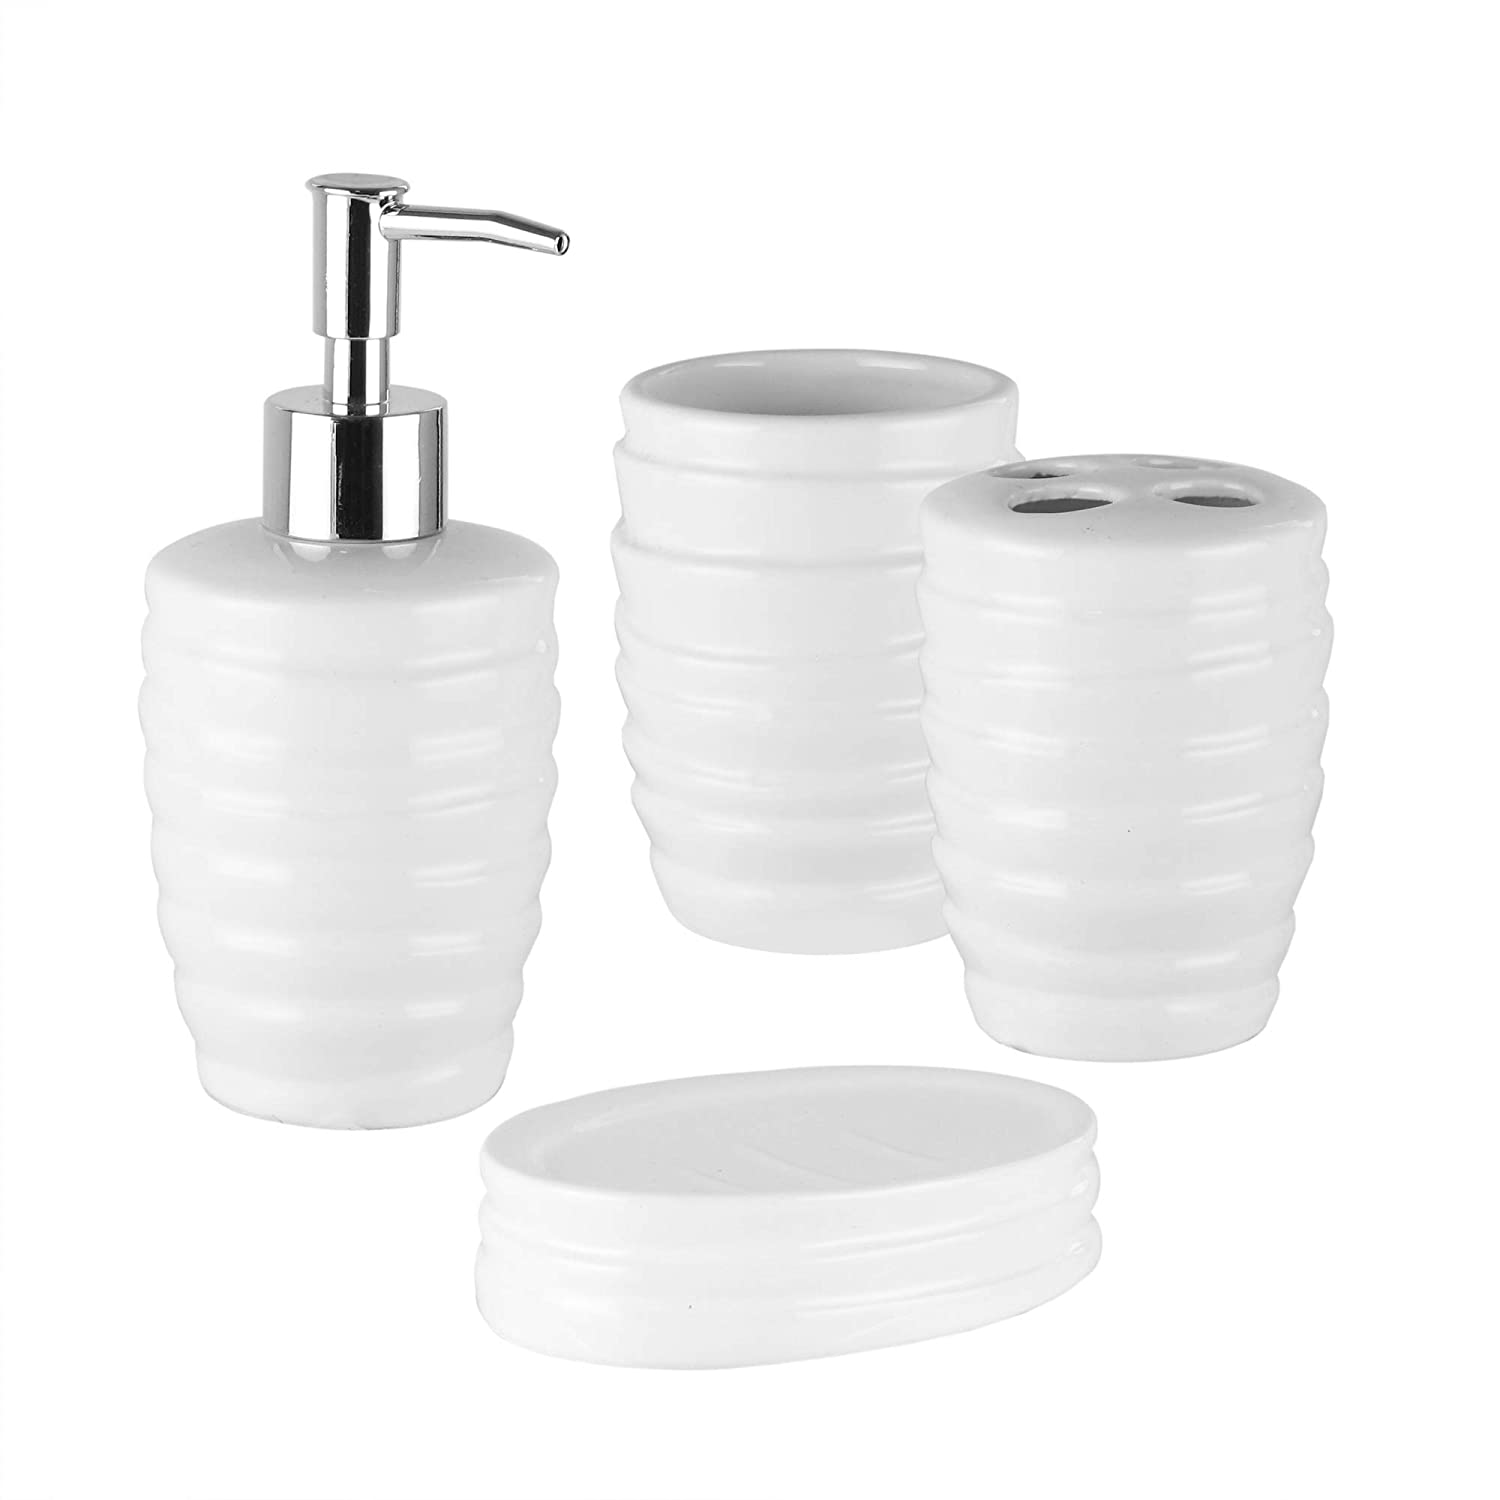 American Atelier Bath 4 Piece Bathroom Accessory Set, with Soap Dish and Dispenser, Toothbrush Holder, and Tumbler White The Jay Companies 1184527